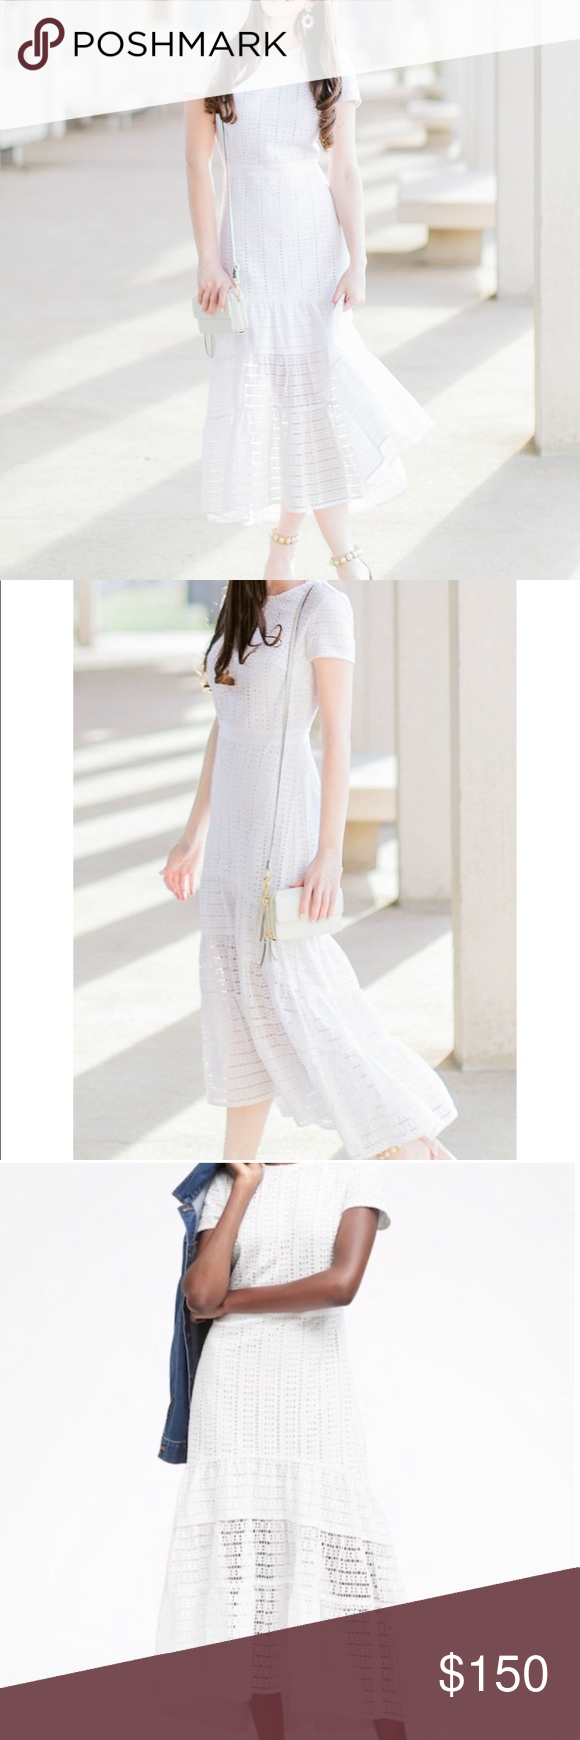 White Fit And Flare Tiered Eyelet Lace Midi Dress Lace Midi Dress Lace Midi Dresses [ 1740 x 580 Pixel ]